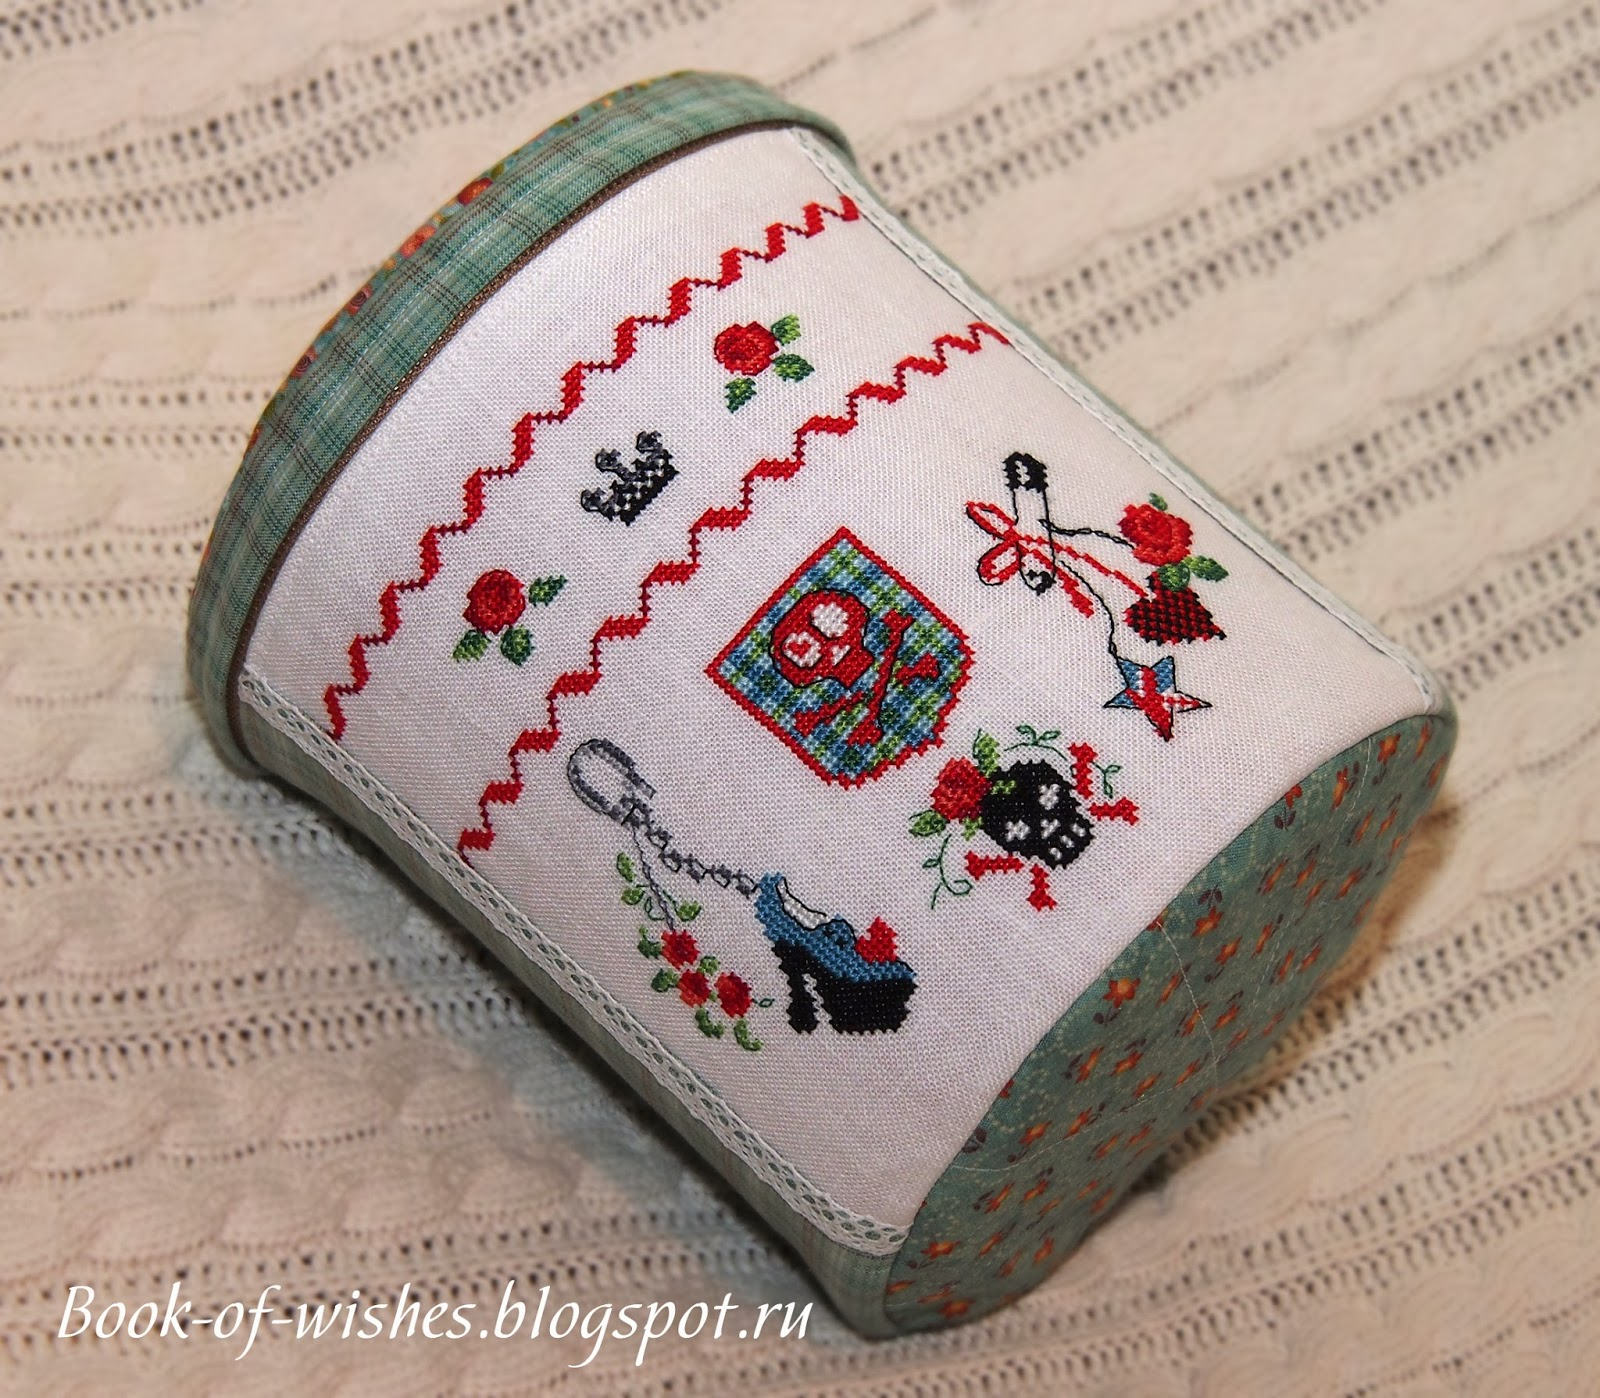 textile round basket with embroidery Veronigue Enginge Mode dHier